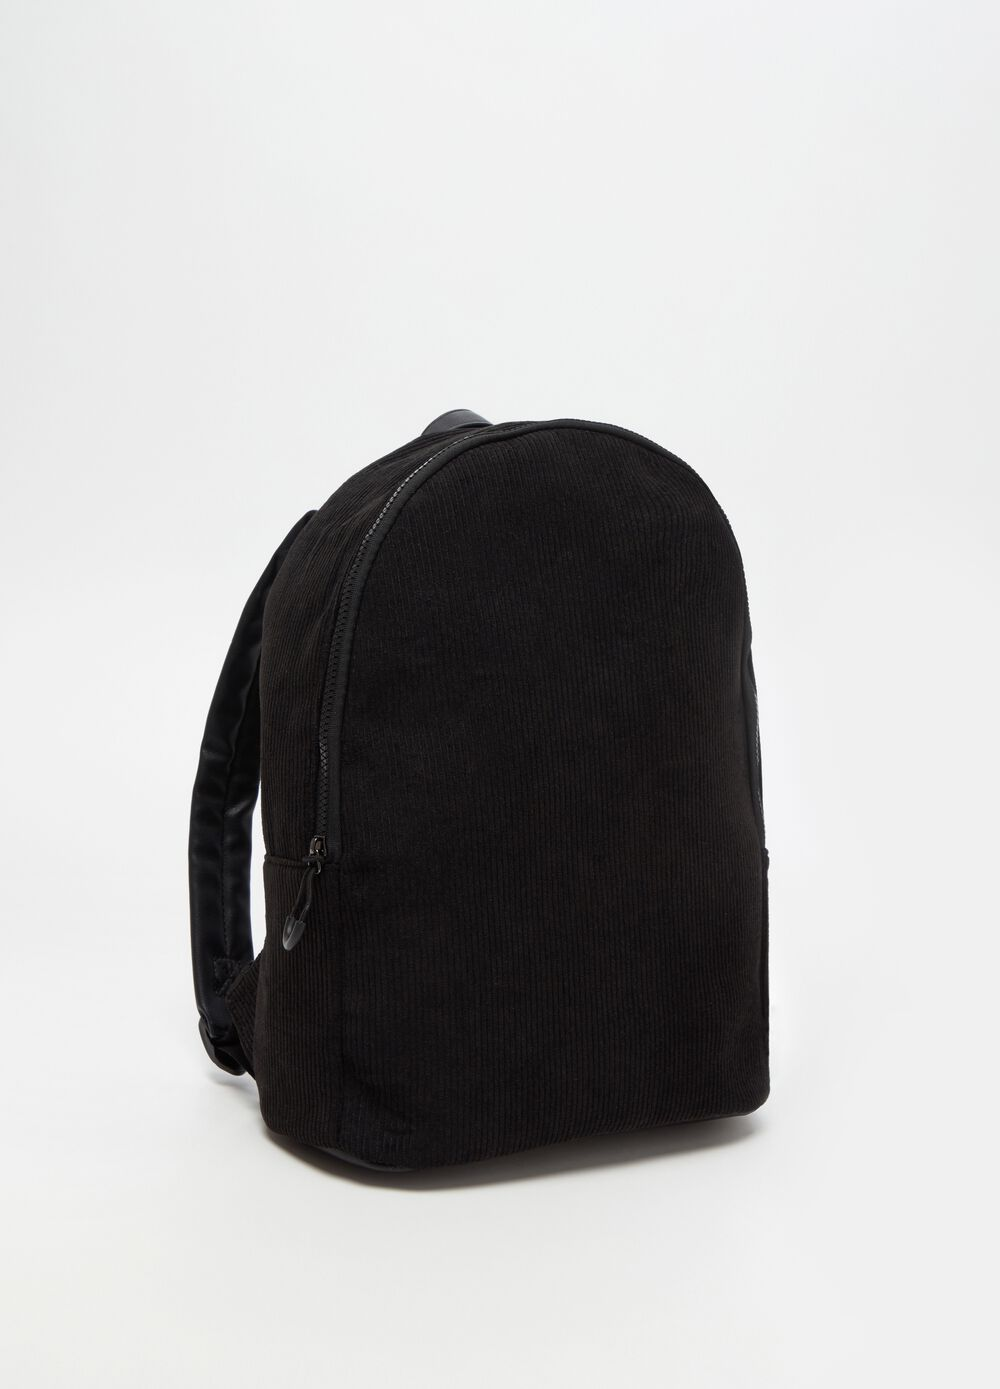 Rounded fabric backpack with zip